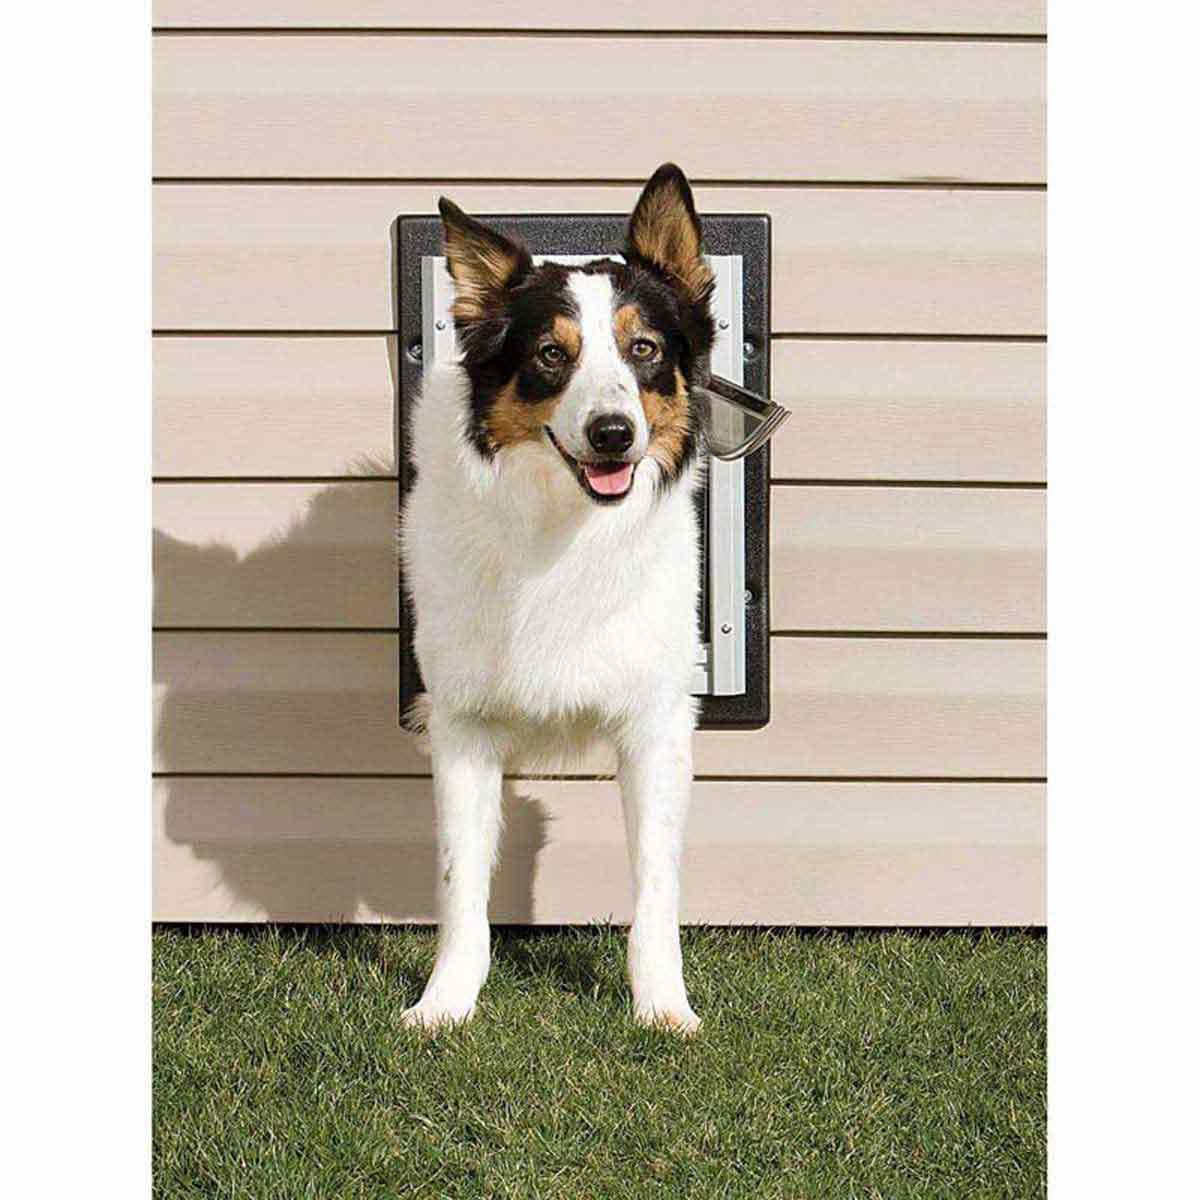 Dog in Pet Safe Wall Entry Pet Door Small 5 inches by 7 inches